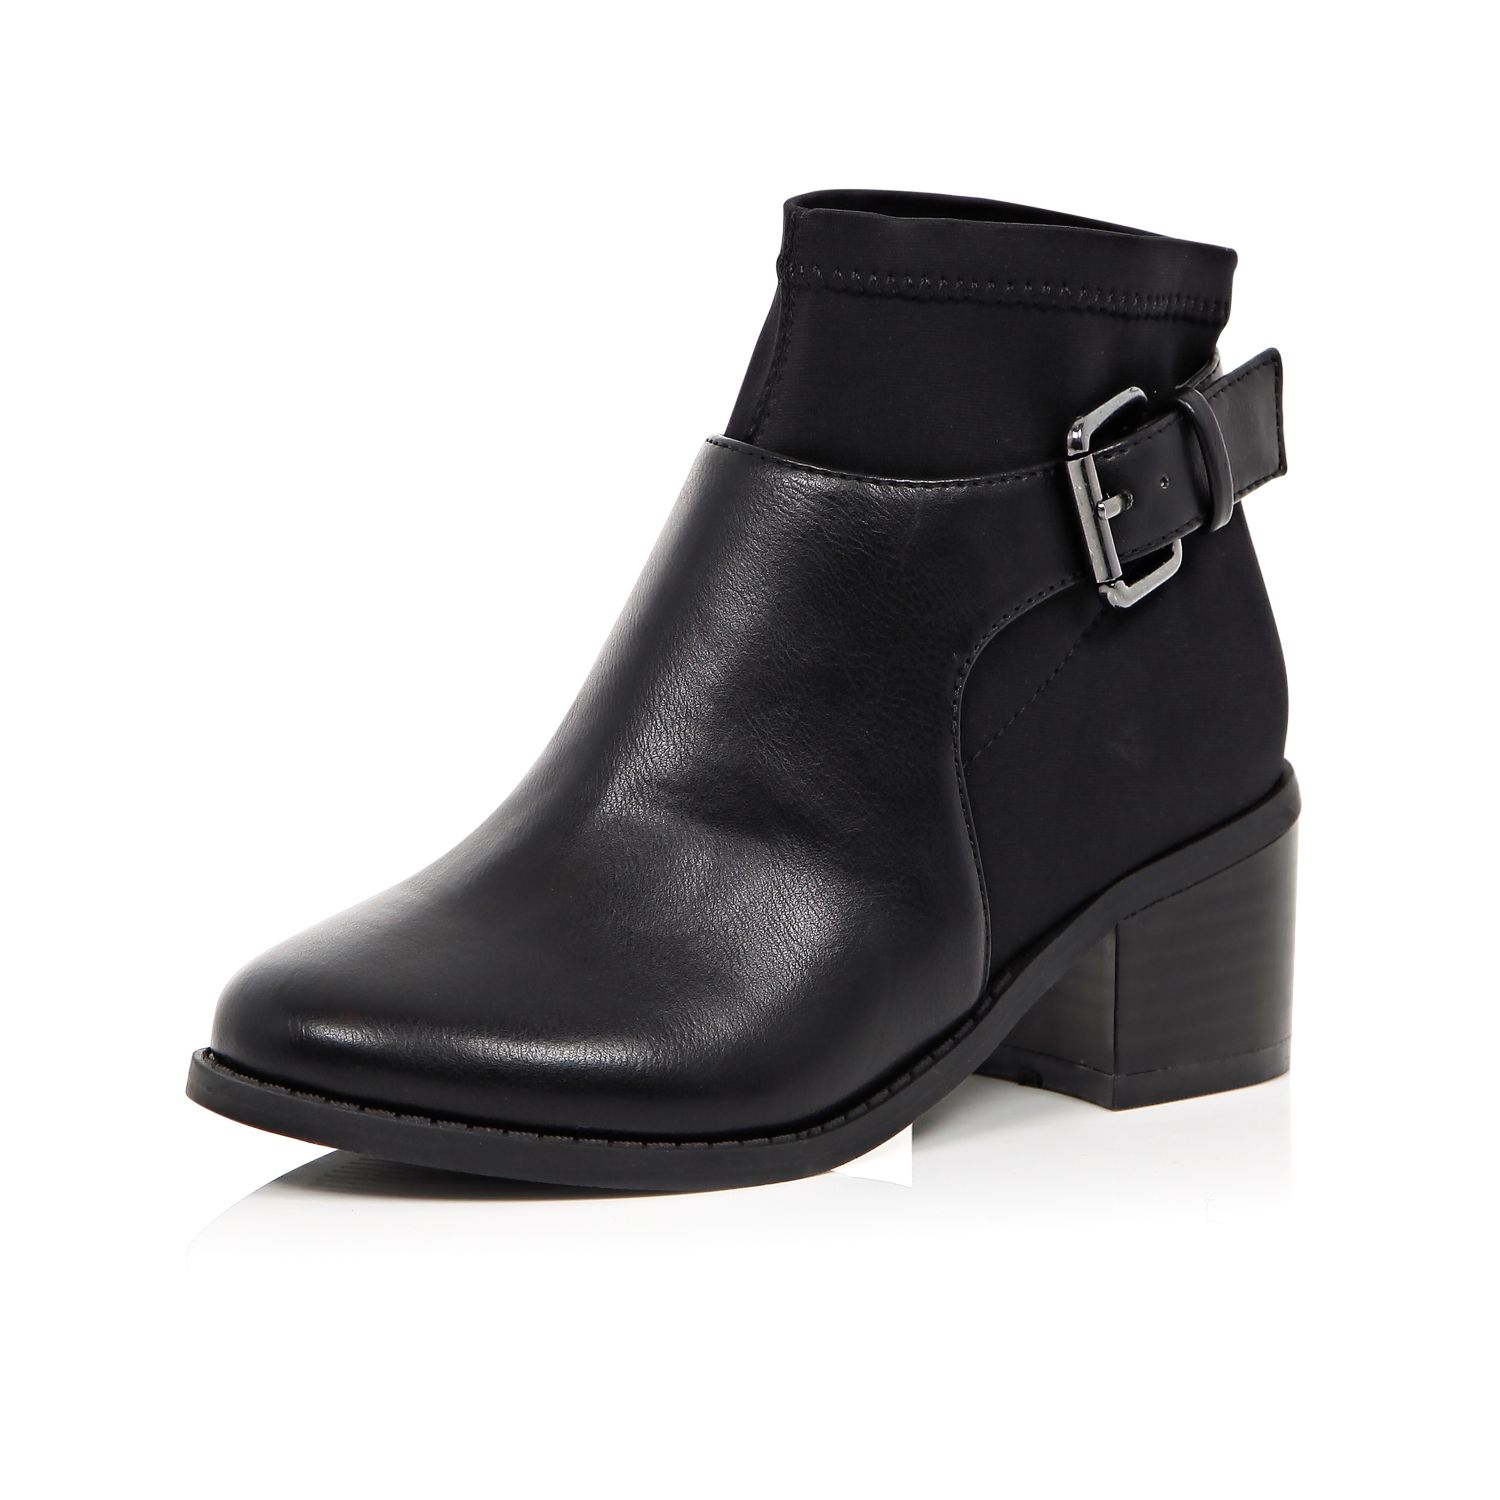 River island Girls Black Scuba Buckle Ankle Boots in Black | Lyst